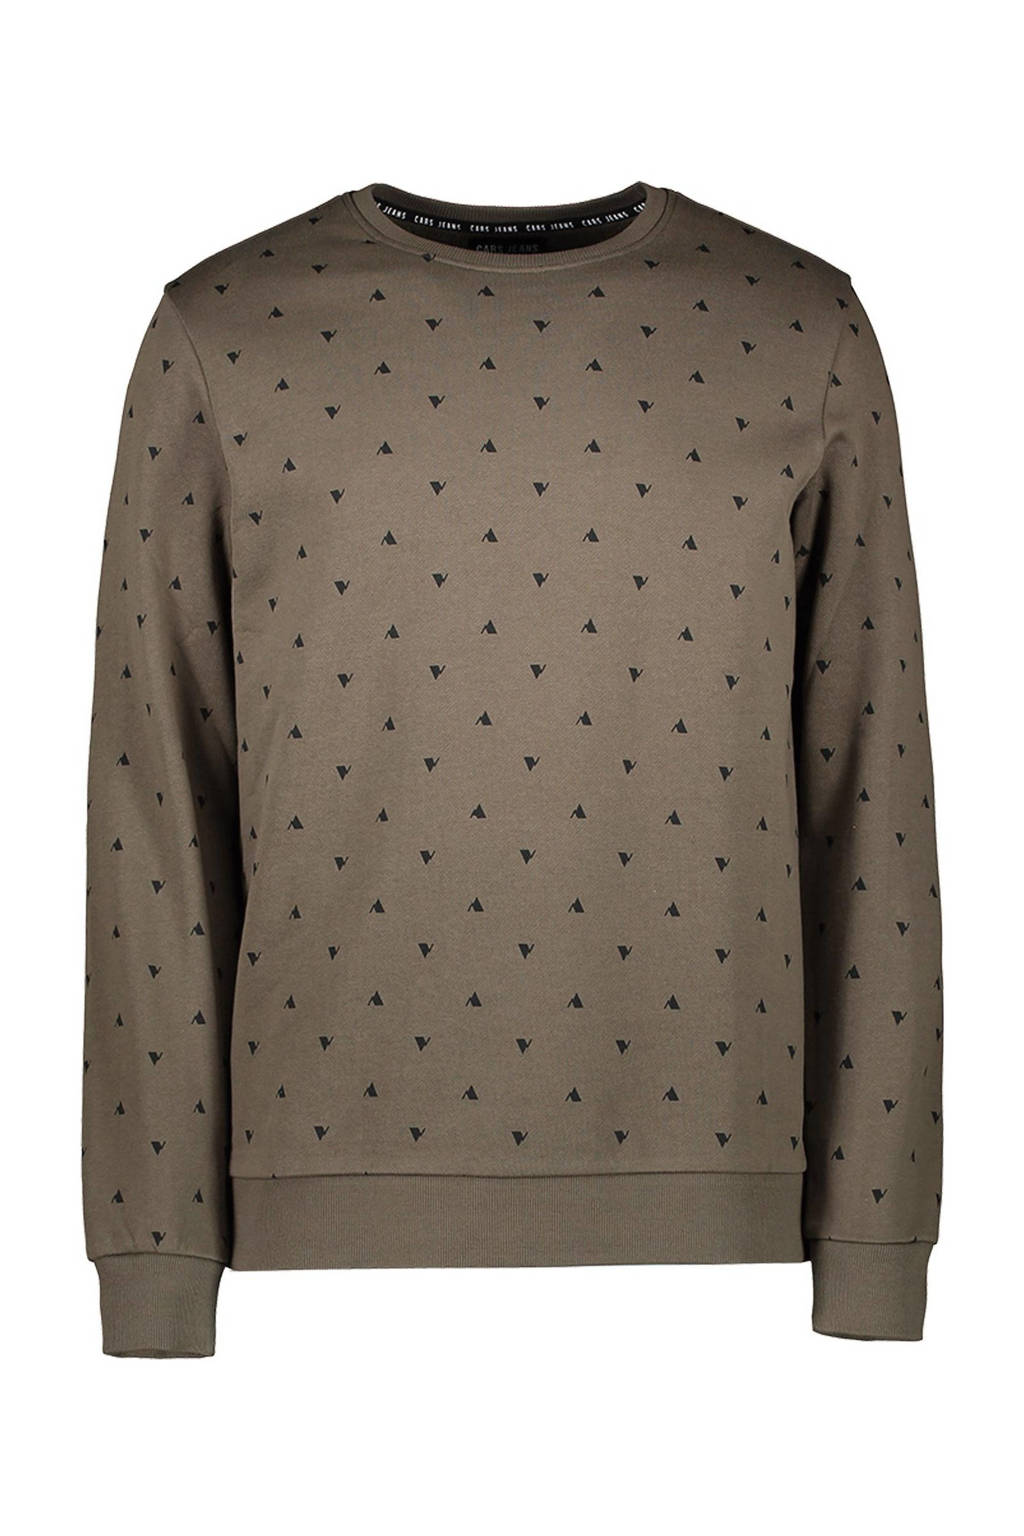 Cars sweater Gryss met all over print army groen, Army groen